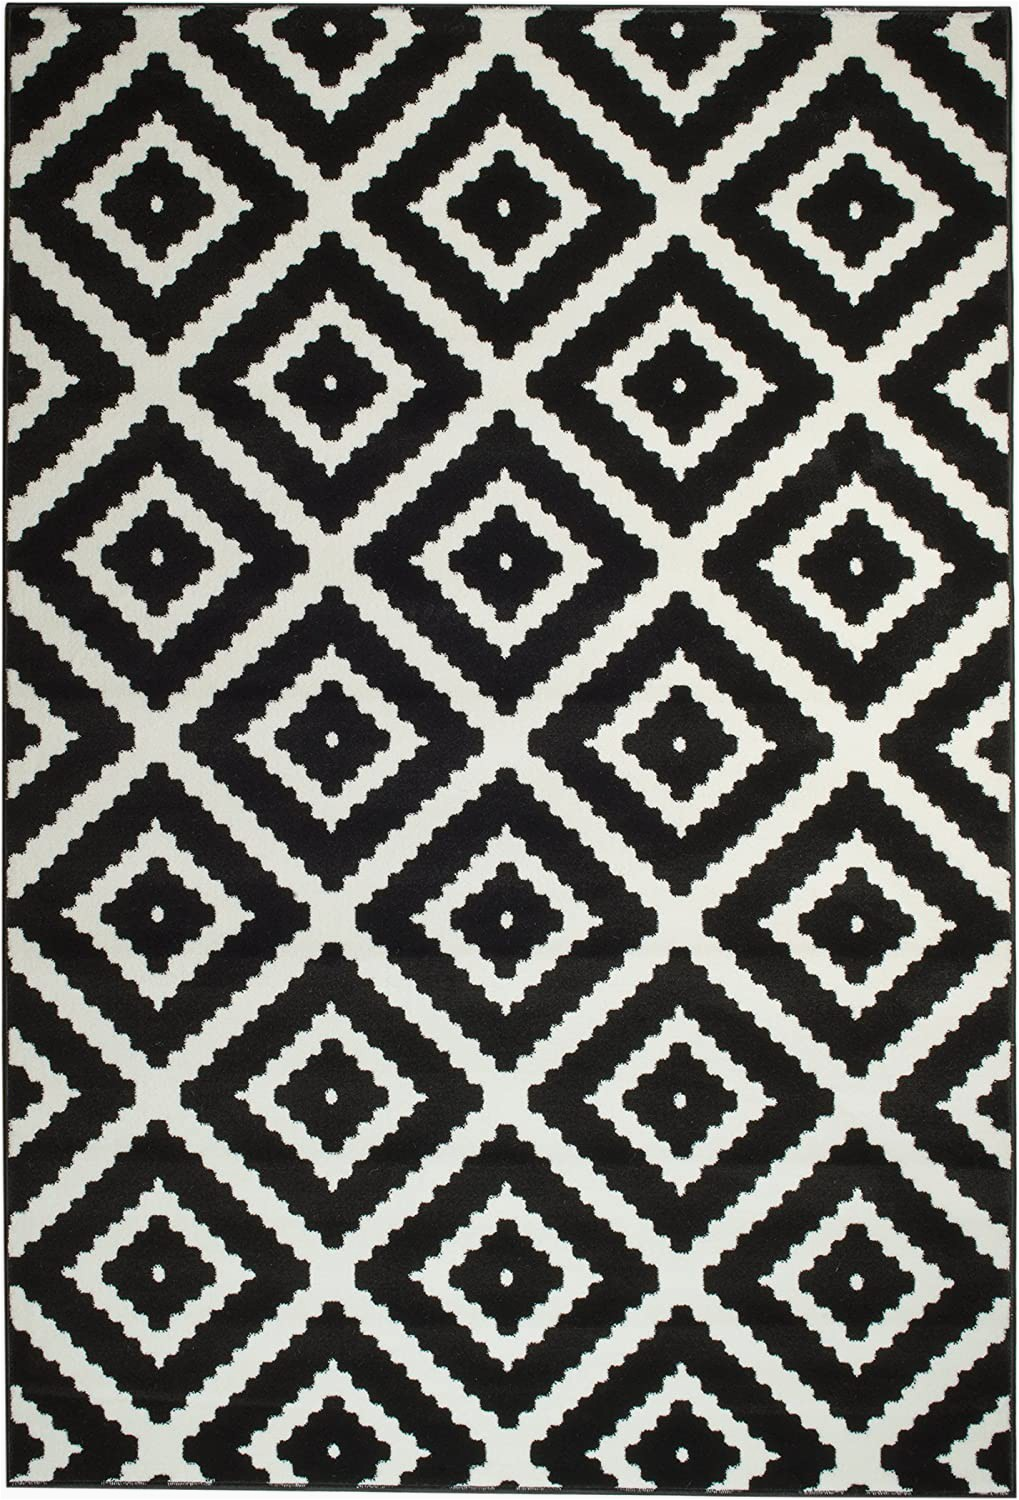 Black and White area Rugs Amazon Summit 46 Black White Diamond area Rug Modern Abstract Many Sizes Available Door Mat 22 Inch X 35 Inch